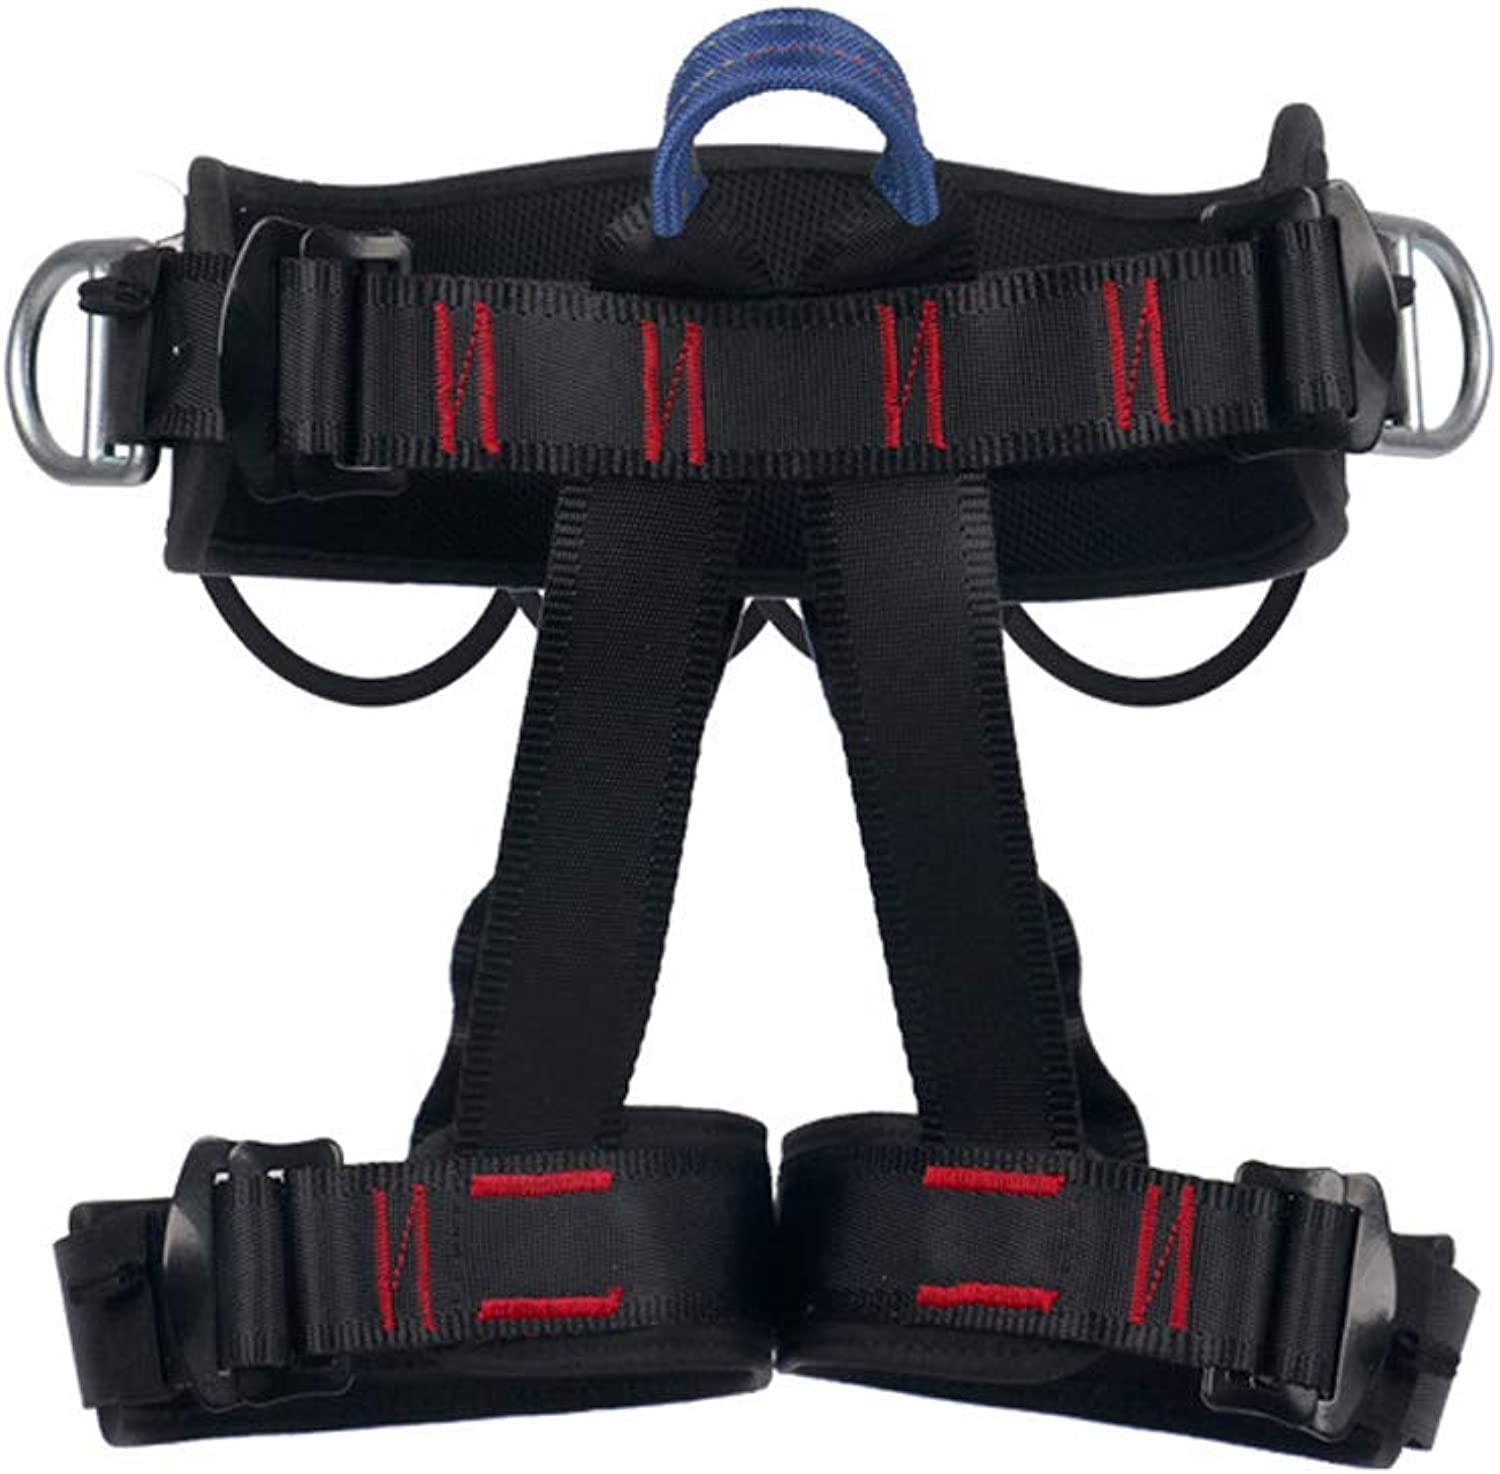 Climbing Harness, Professional Predect Waist Safety Harness Rock Climbing Harness Wider Half Body Harness for Mountaineering Rappelling